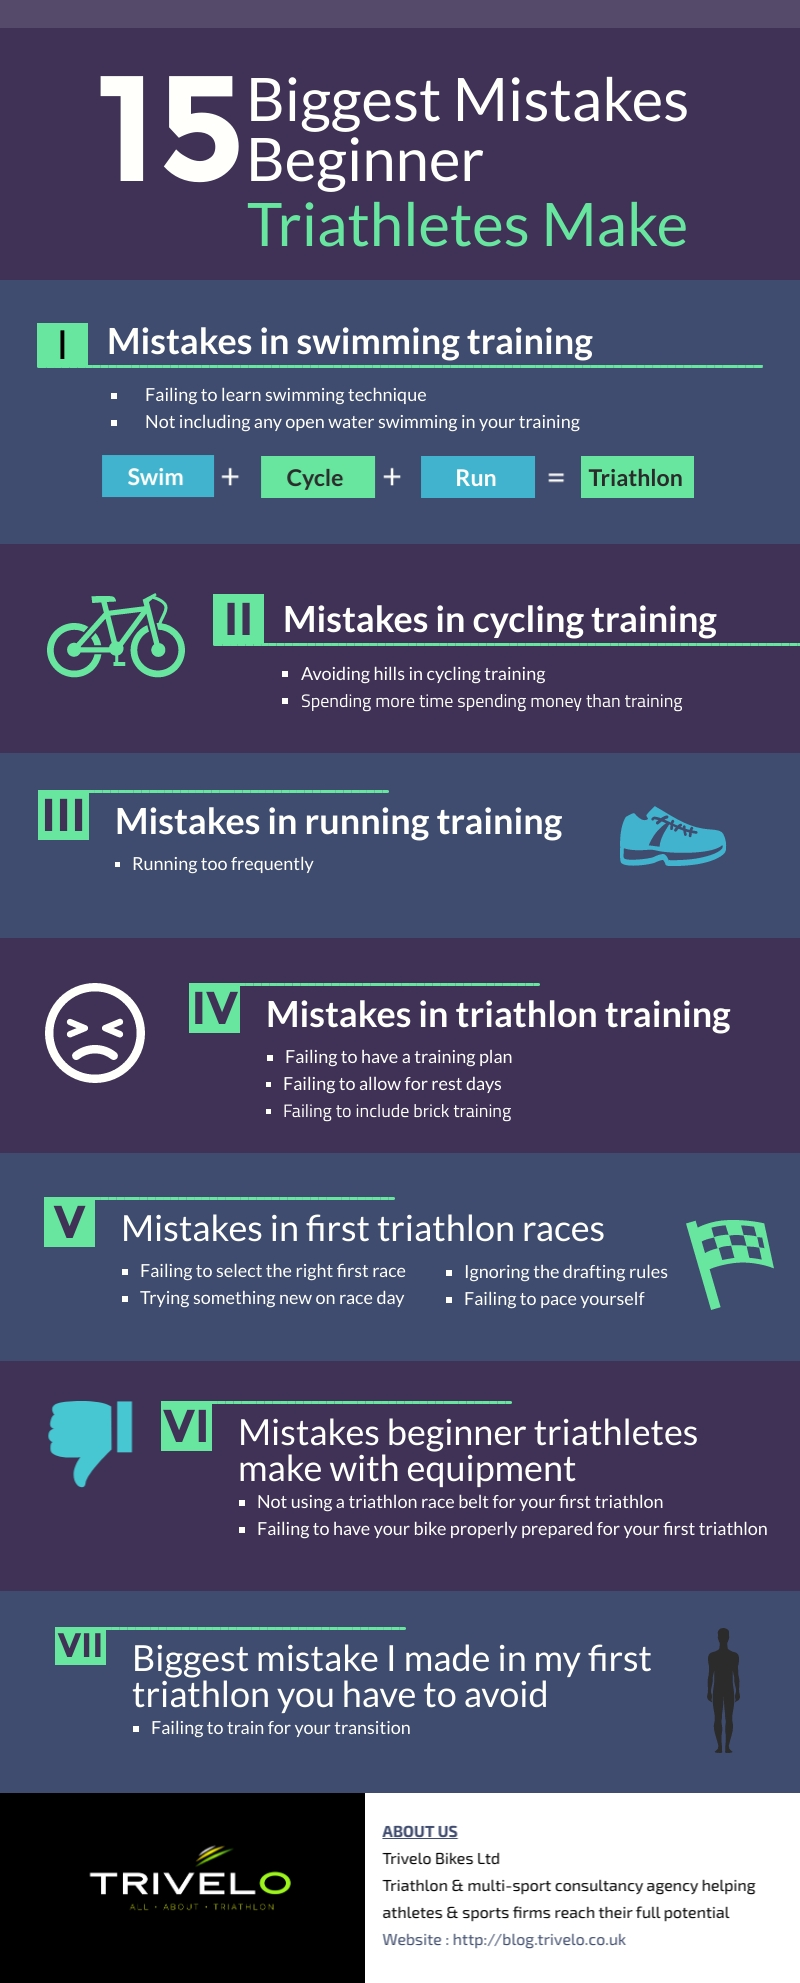 15 biggest mistakes beginner triathletes make infographic